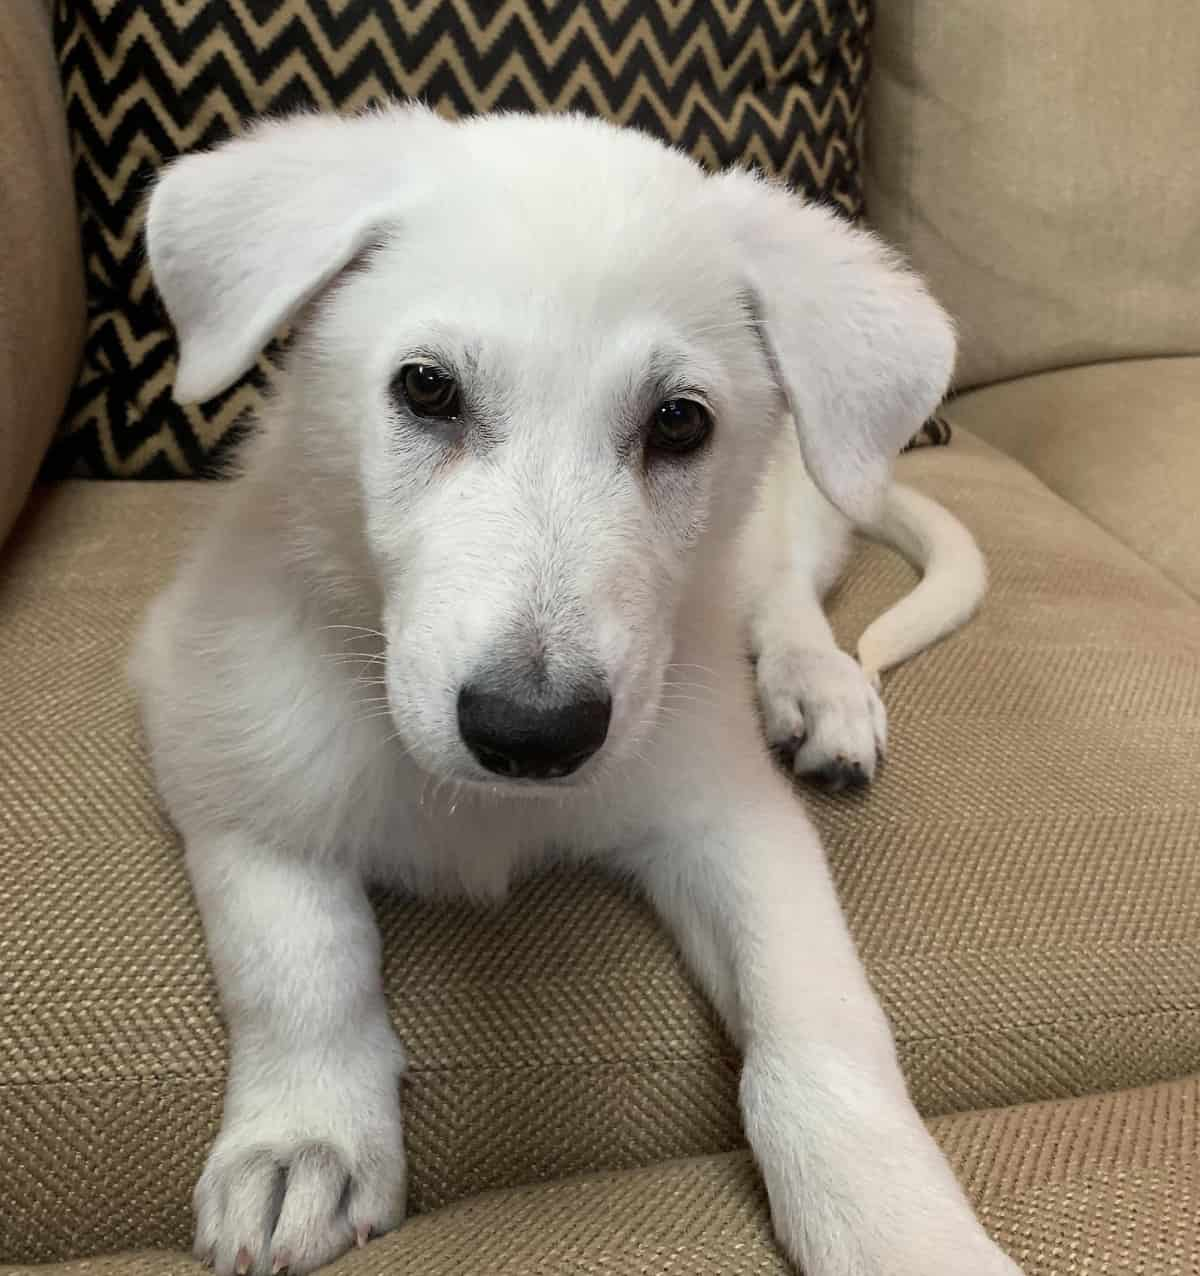 A puppy on a couch looking at the camera